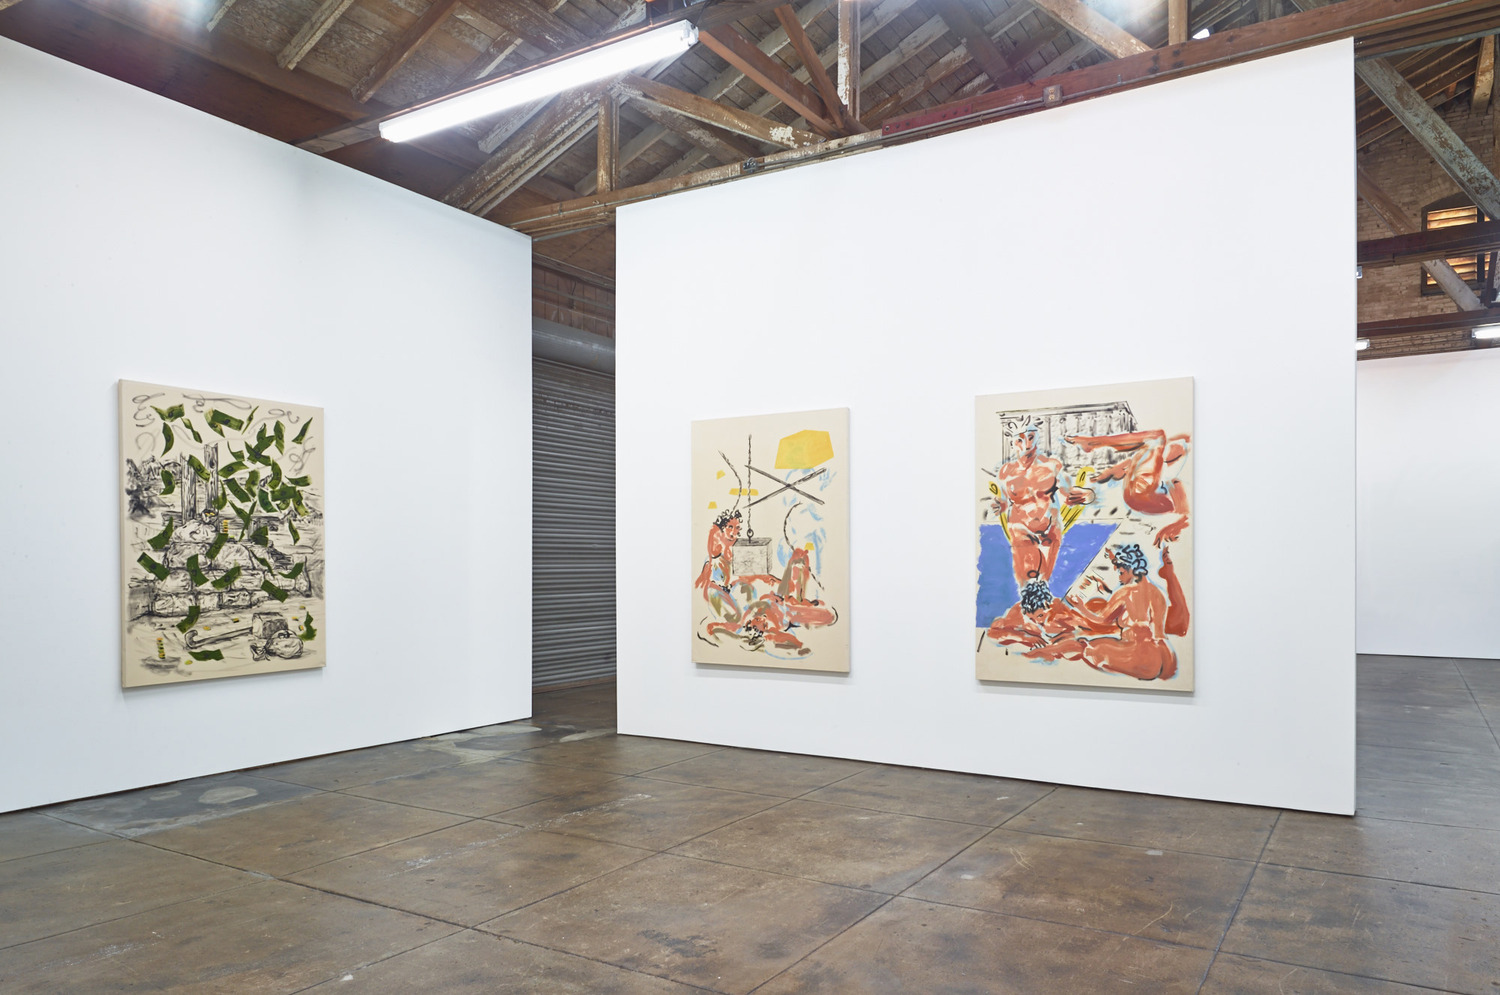 Installation view 'Authentic Spiritual Spray', Ibid, Los Angeles, 2014